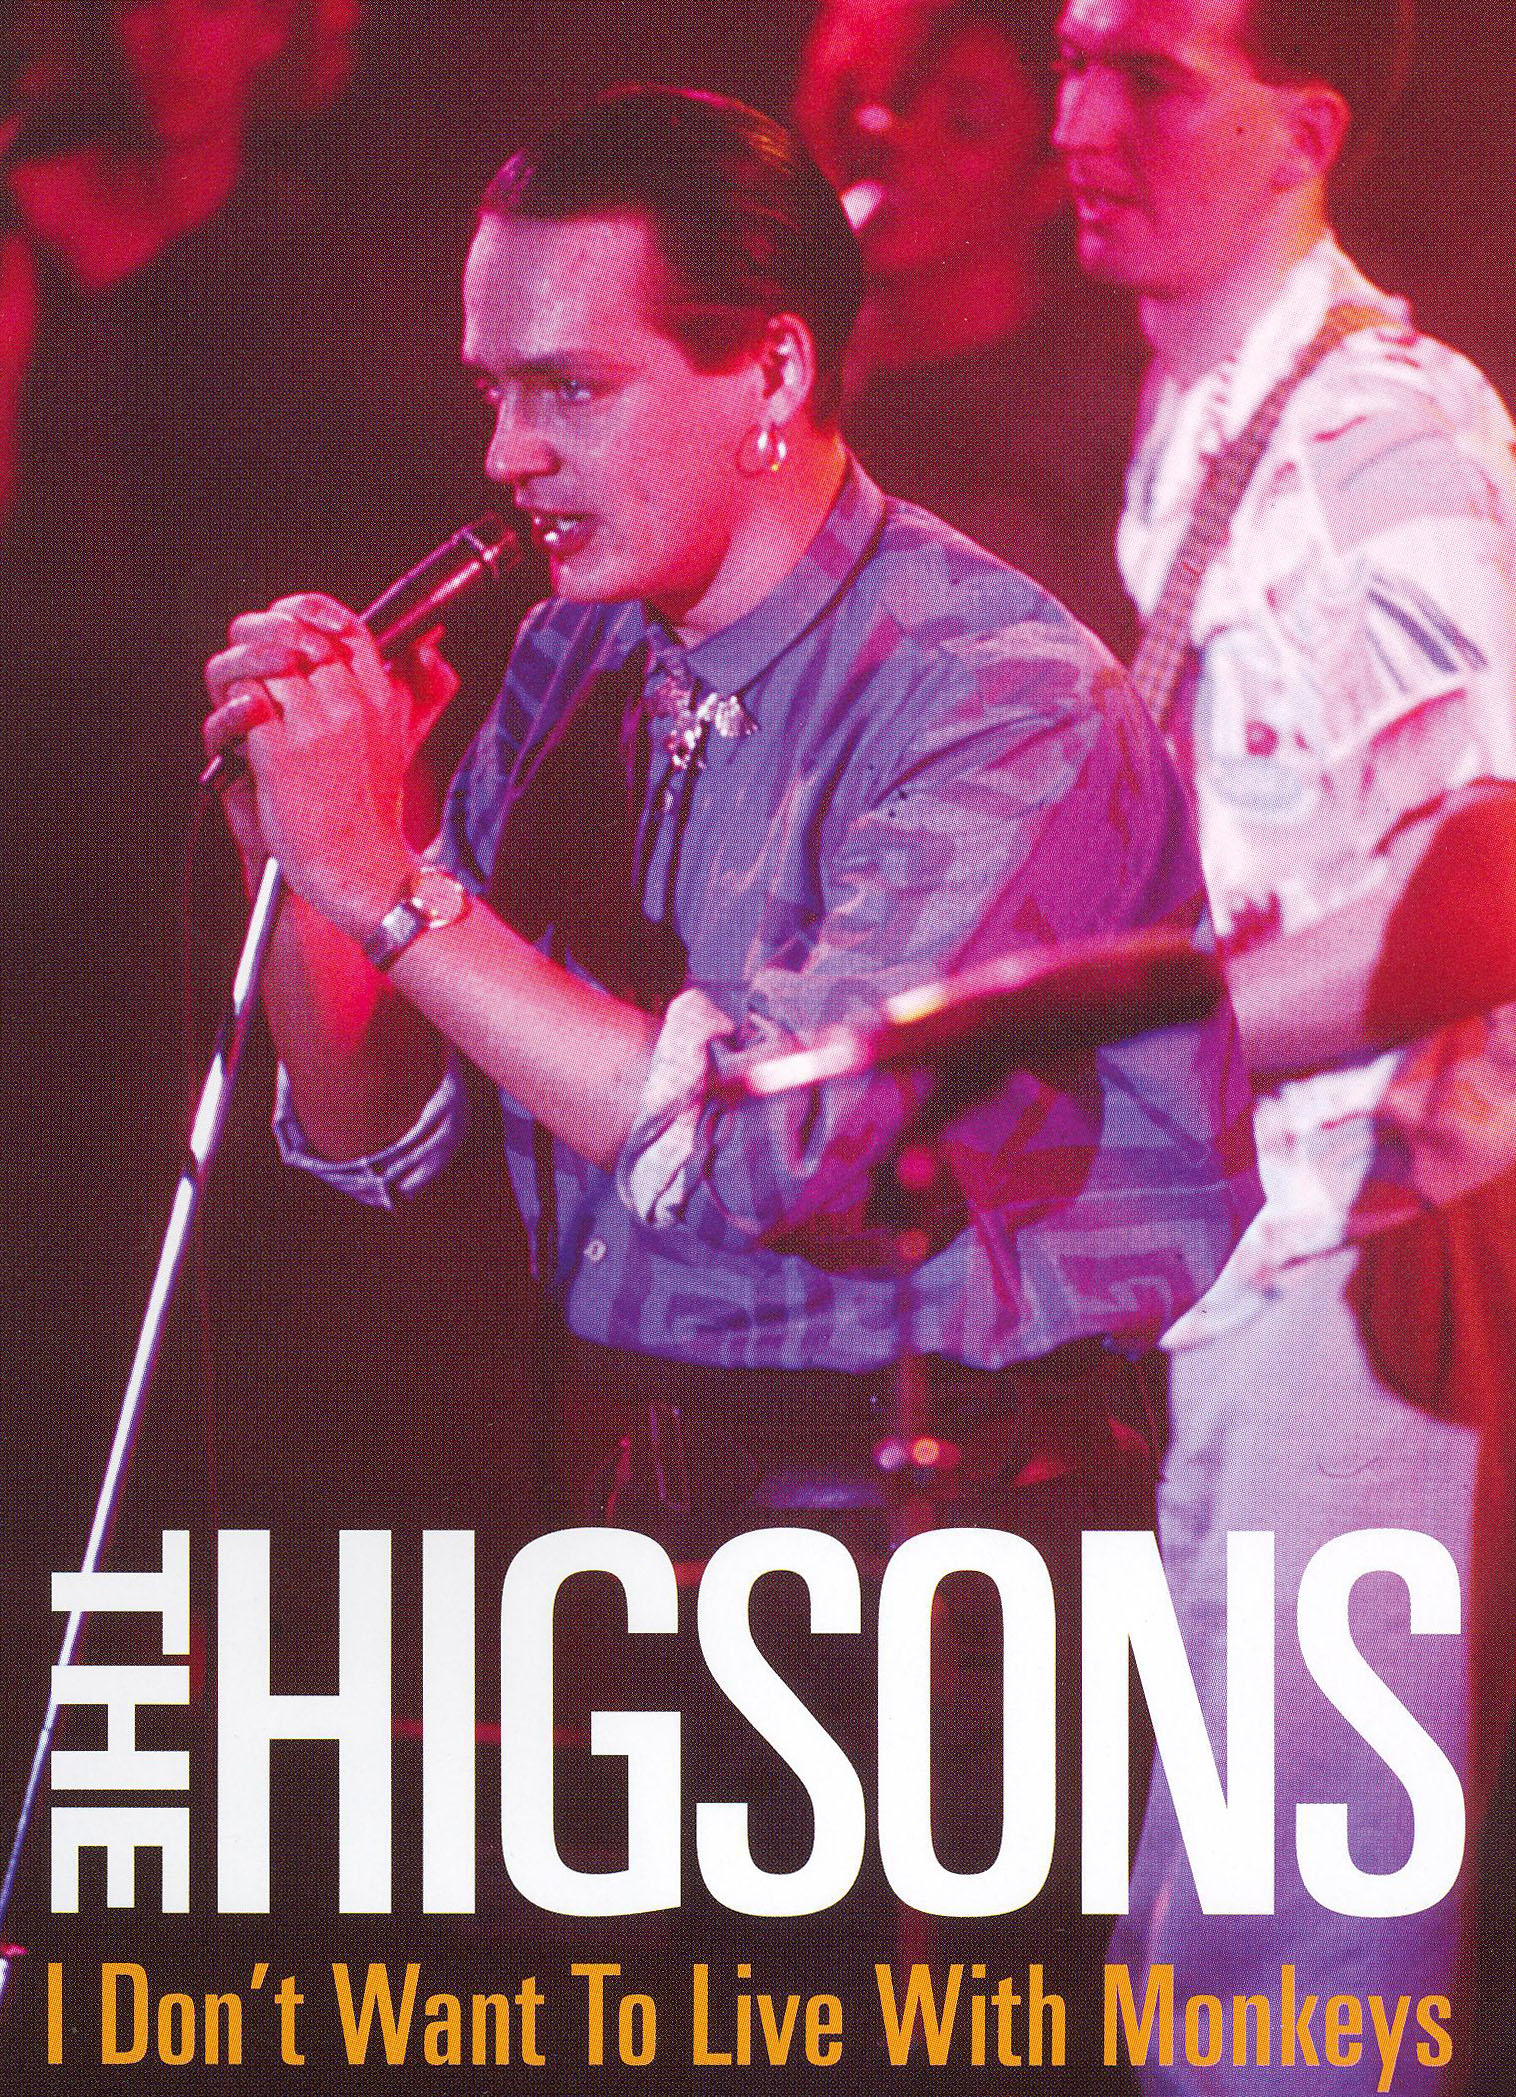 The Higsons: I Don't Want to Live with Monkeys - The Higsons Live